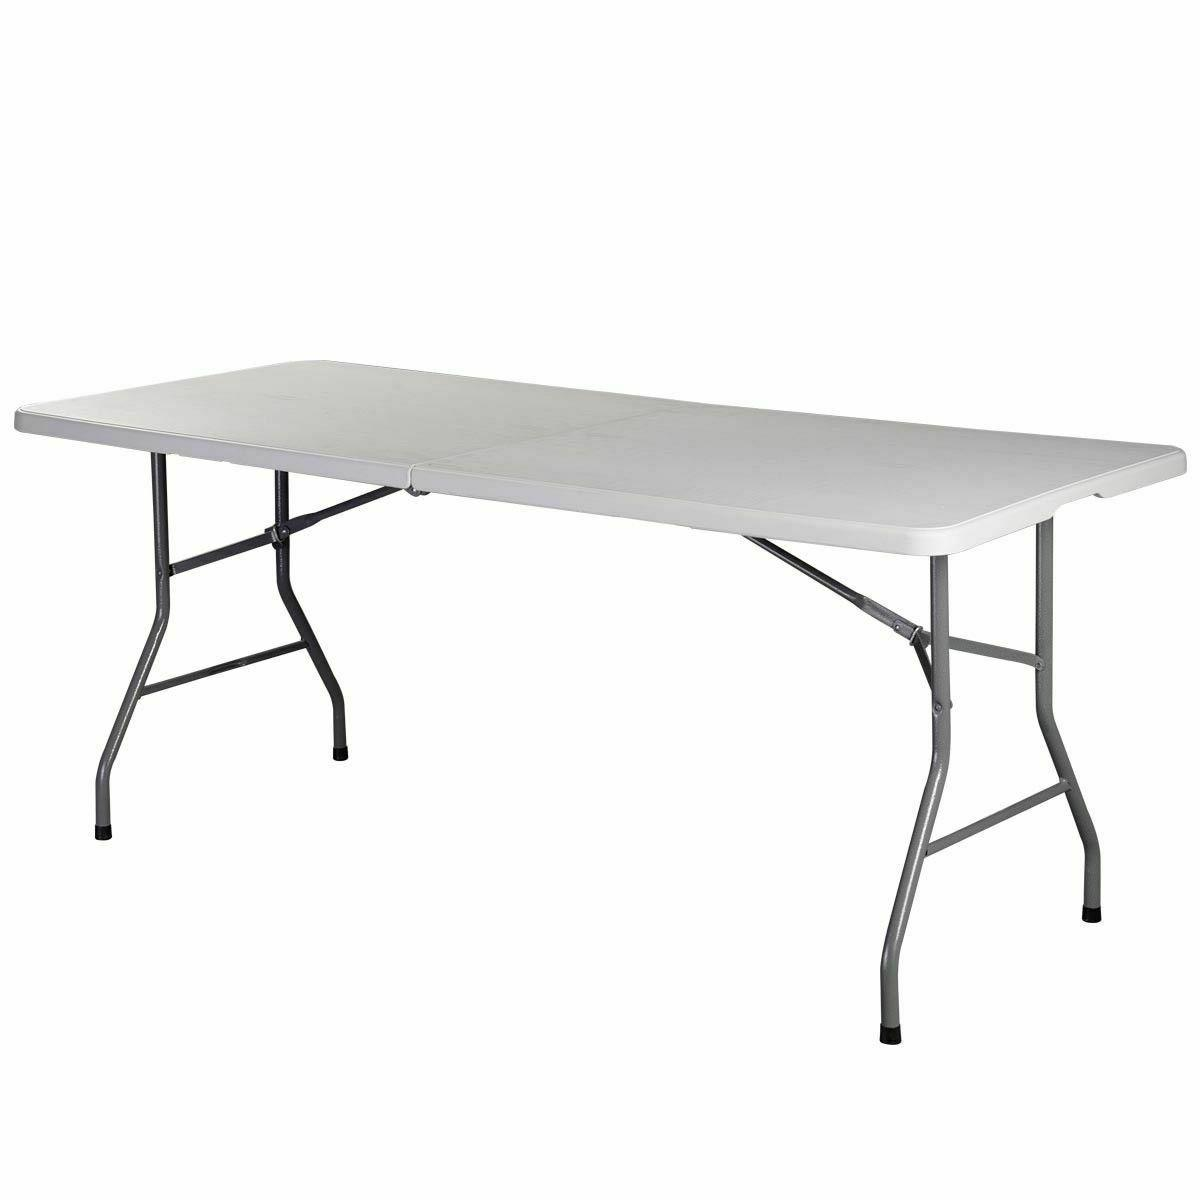 6' Folding Party Dining Camp Tables